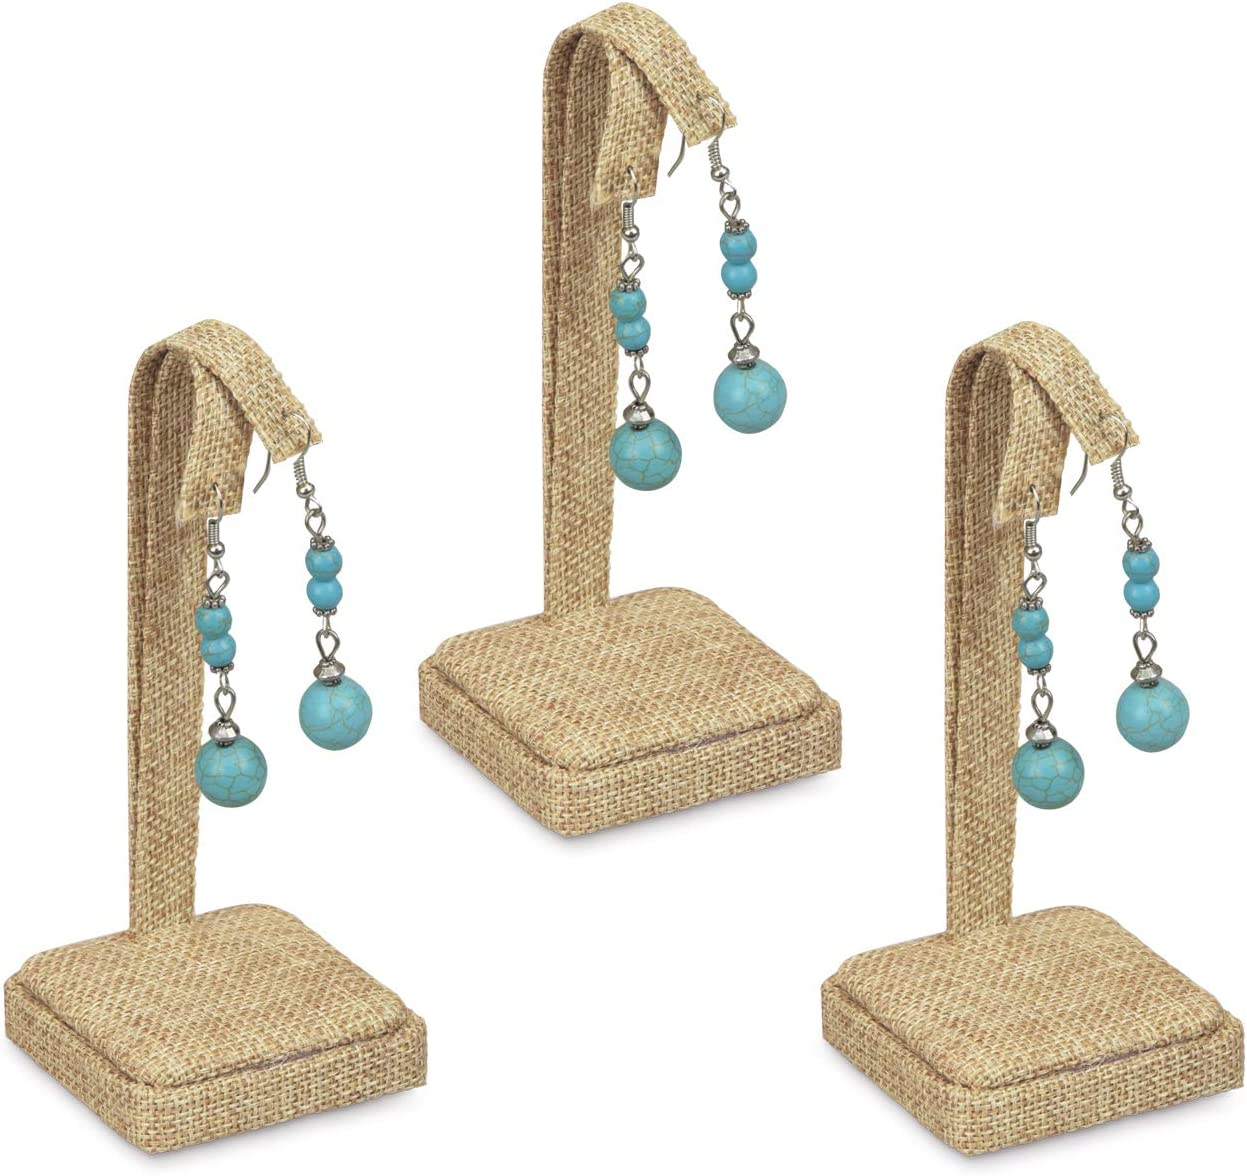 """MOOCA 3 Pcs Set Linen Jewelry Stand For Earrings Earring Holder Display Stand Earring Display, 2 1/4""""W x 2 1/4""""D x 5""""H : Clothing, Shoes & Jewelry"""